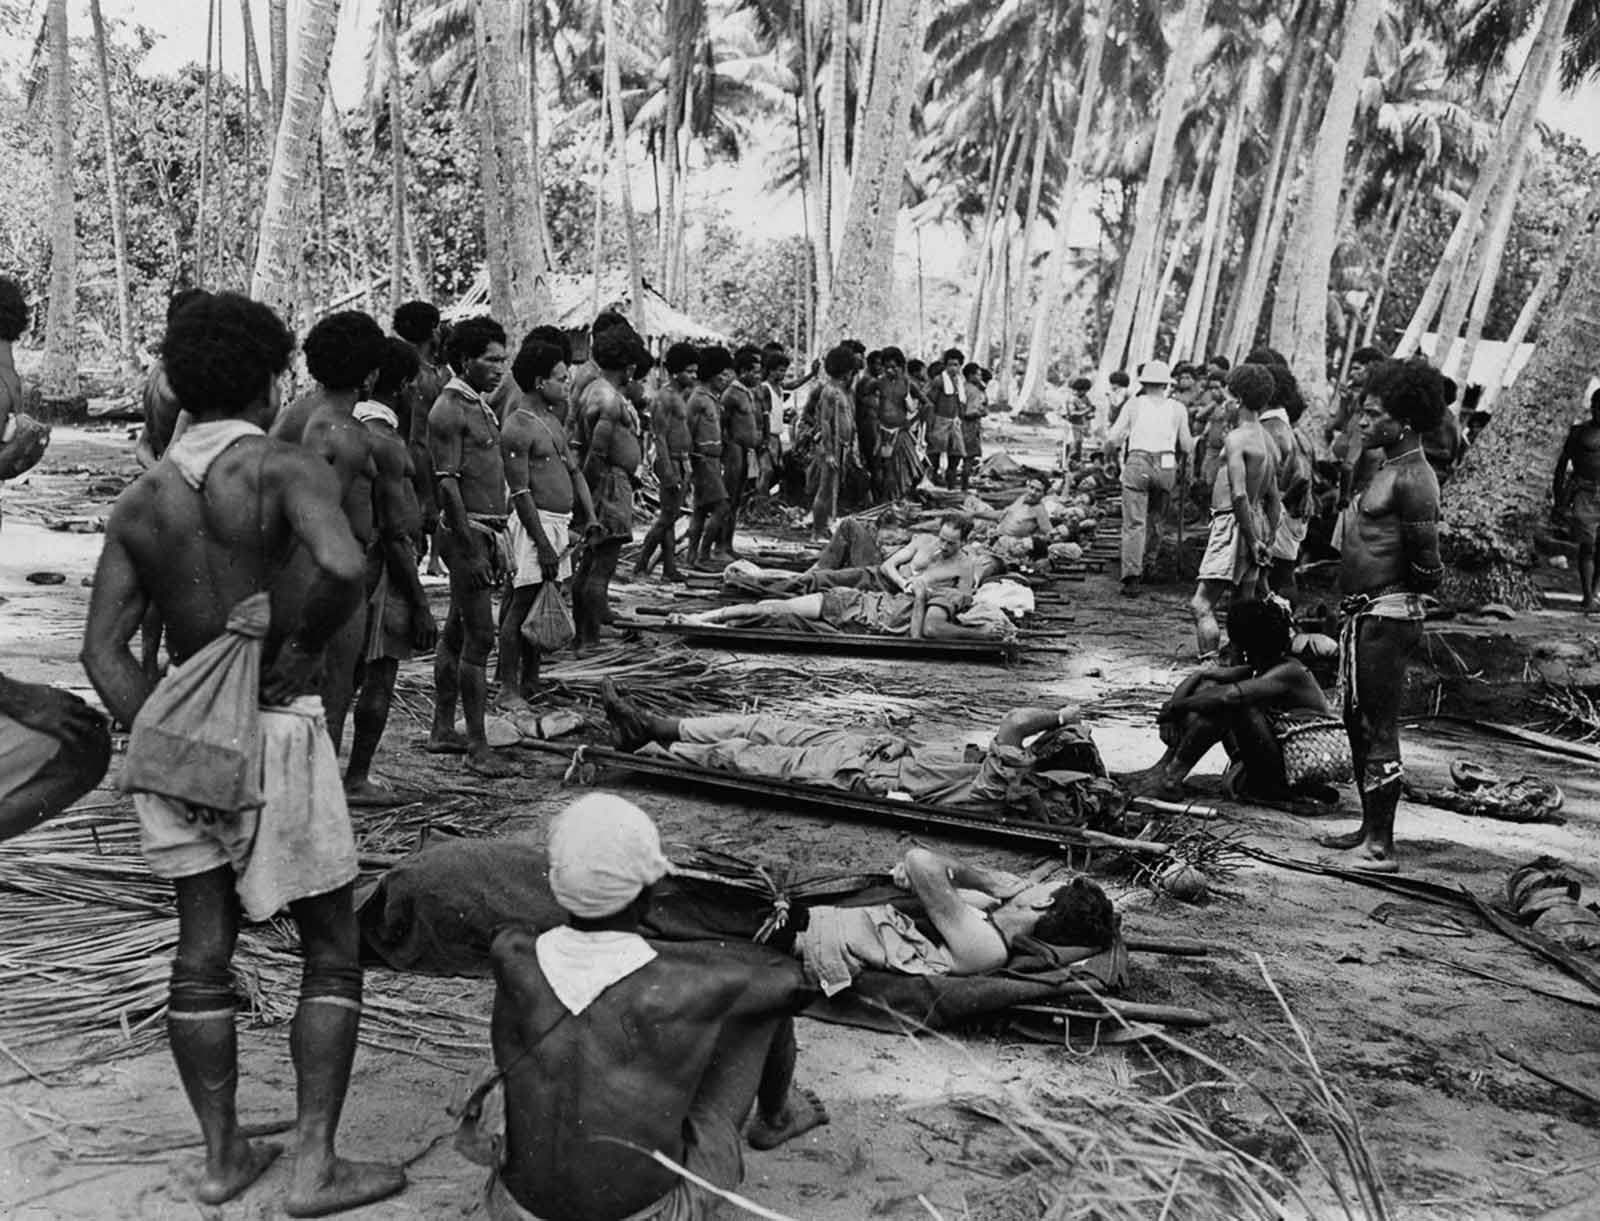 Stretcher bearers pause for a rest in a coconut grove en route to aid stations in the rear.